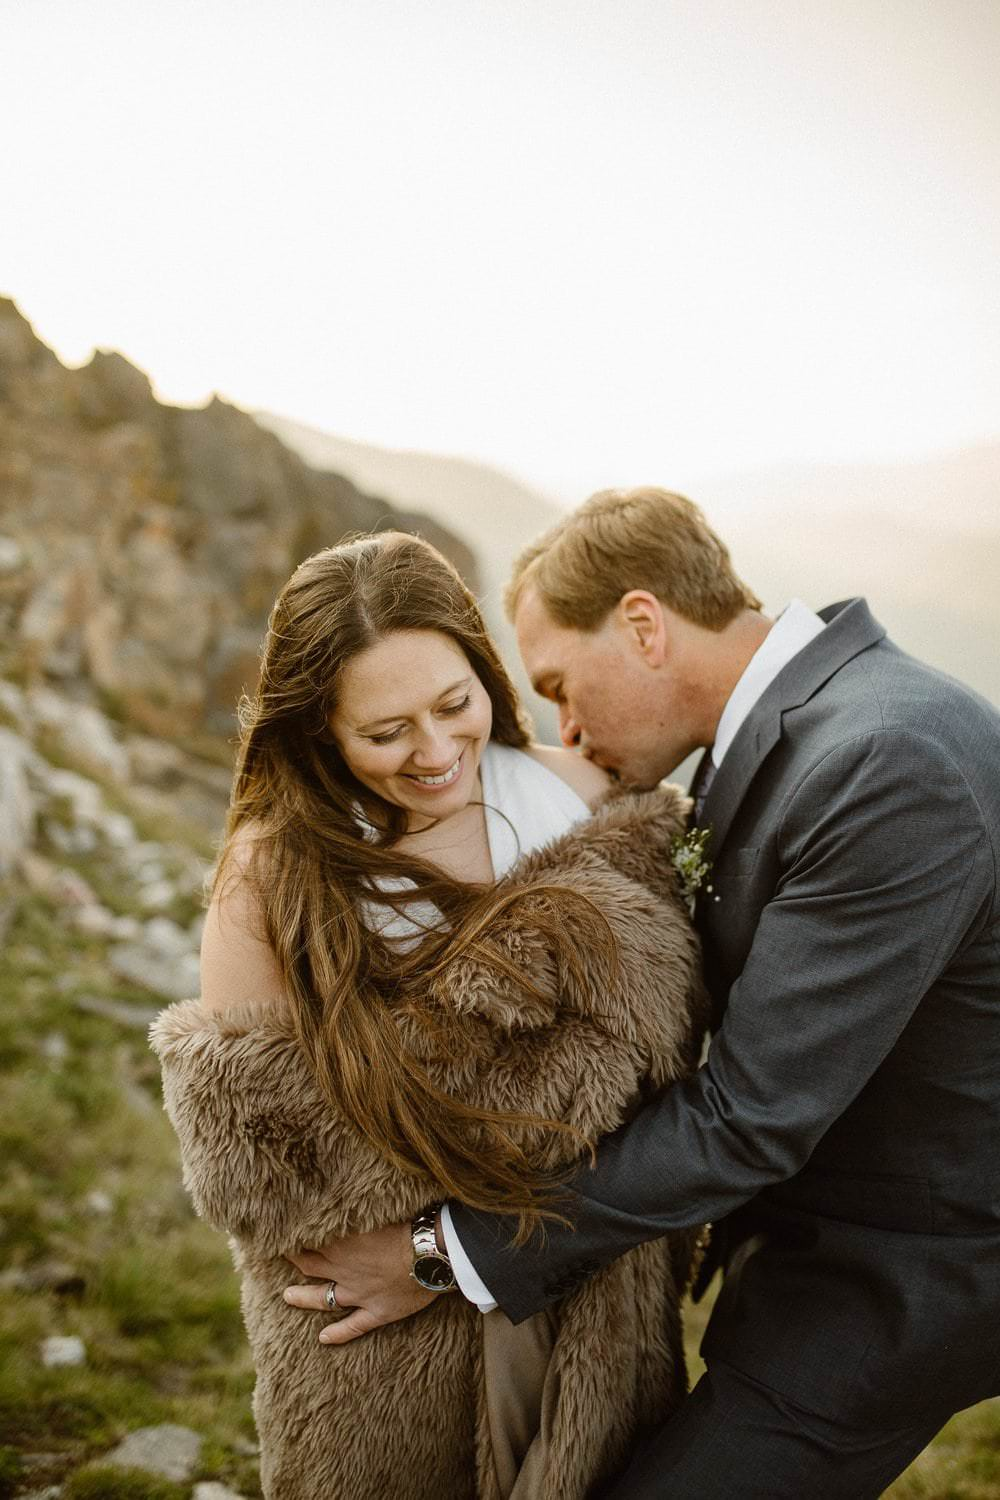 Wrapped in love above 12000 feet. Colorado Intimate Weddings and Adventure Elopement Photographer | Rocky Mountain National Park Wedding Photographer | Adventure